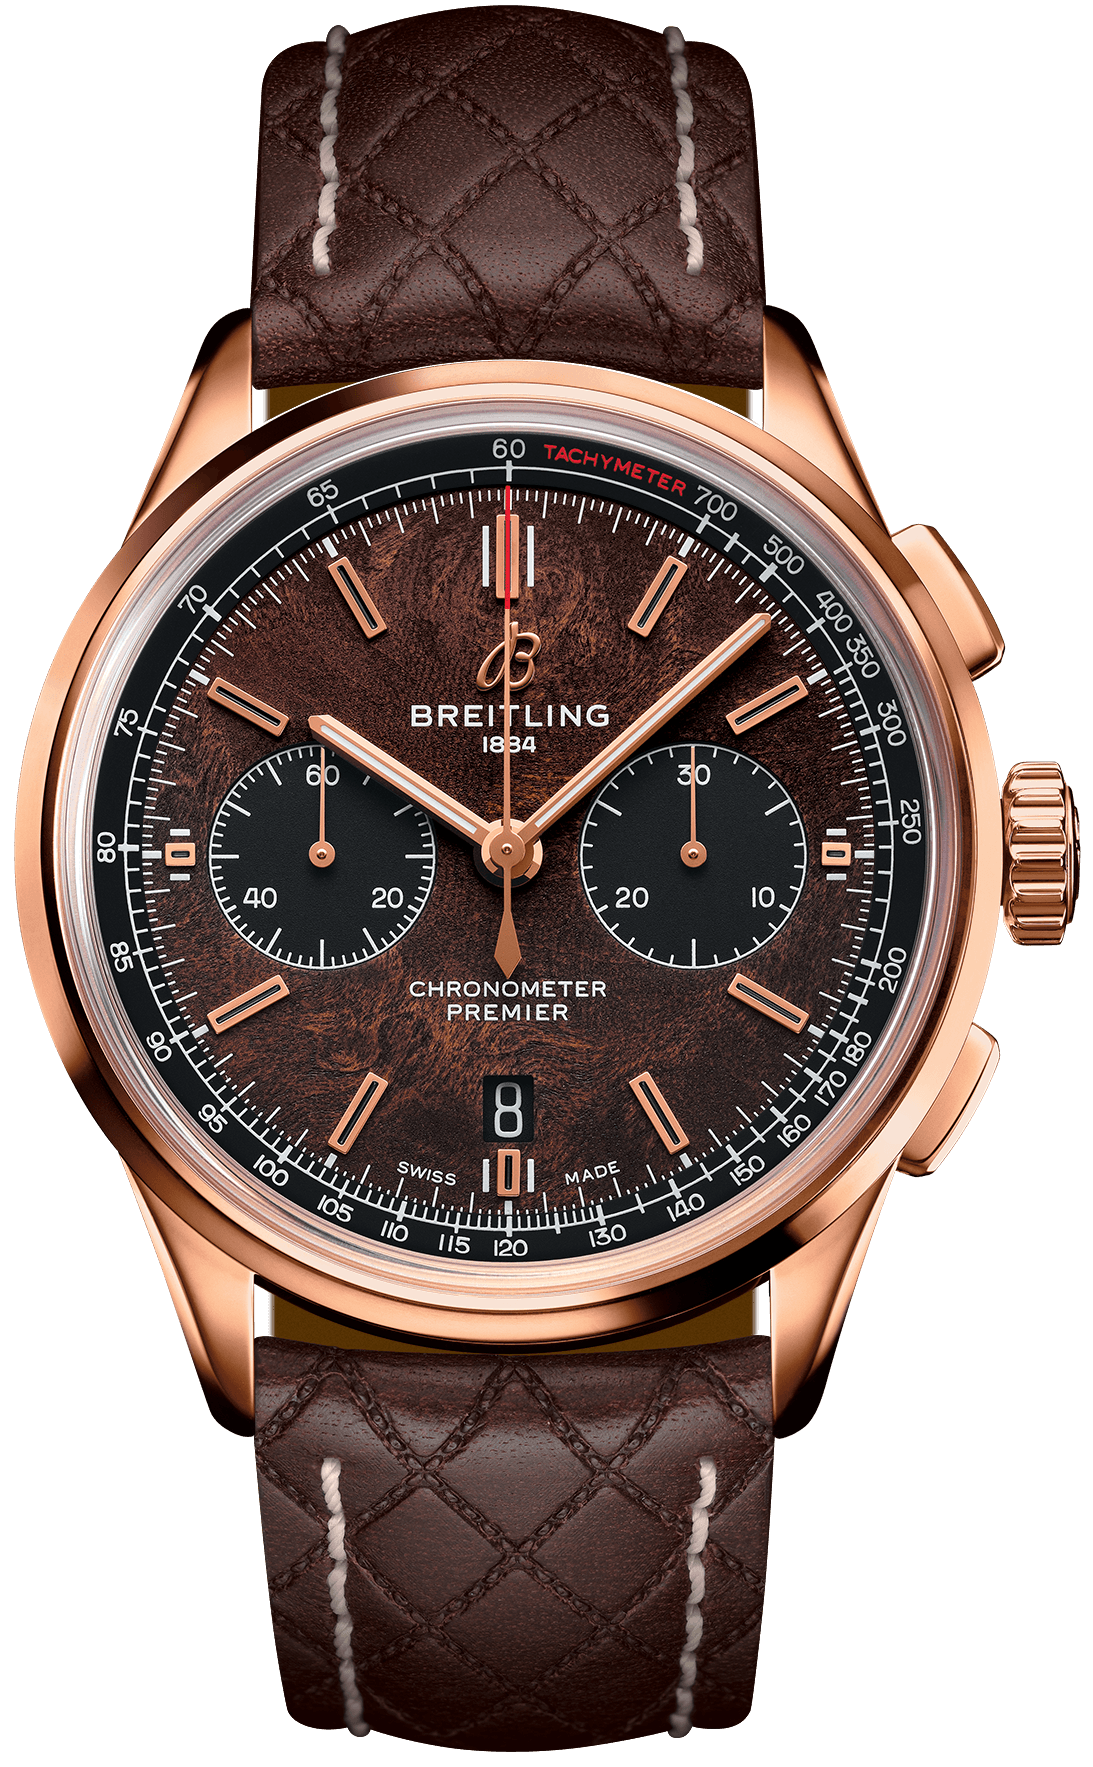 Breitling Bentley Watch >> Breitling Watch B01 Chronograph 42 Bentley Centenary Red ...